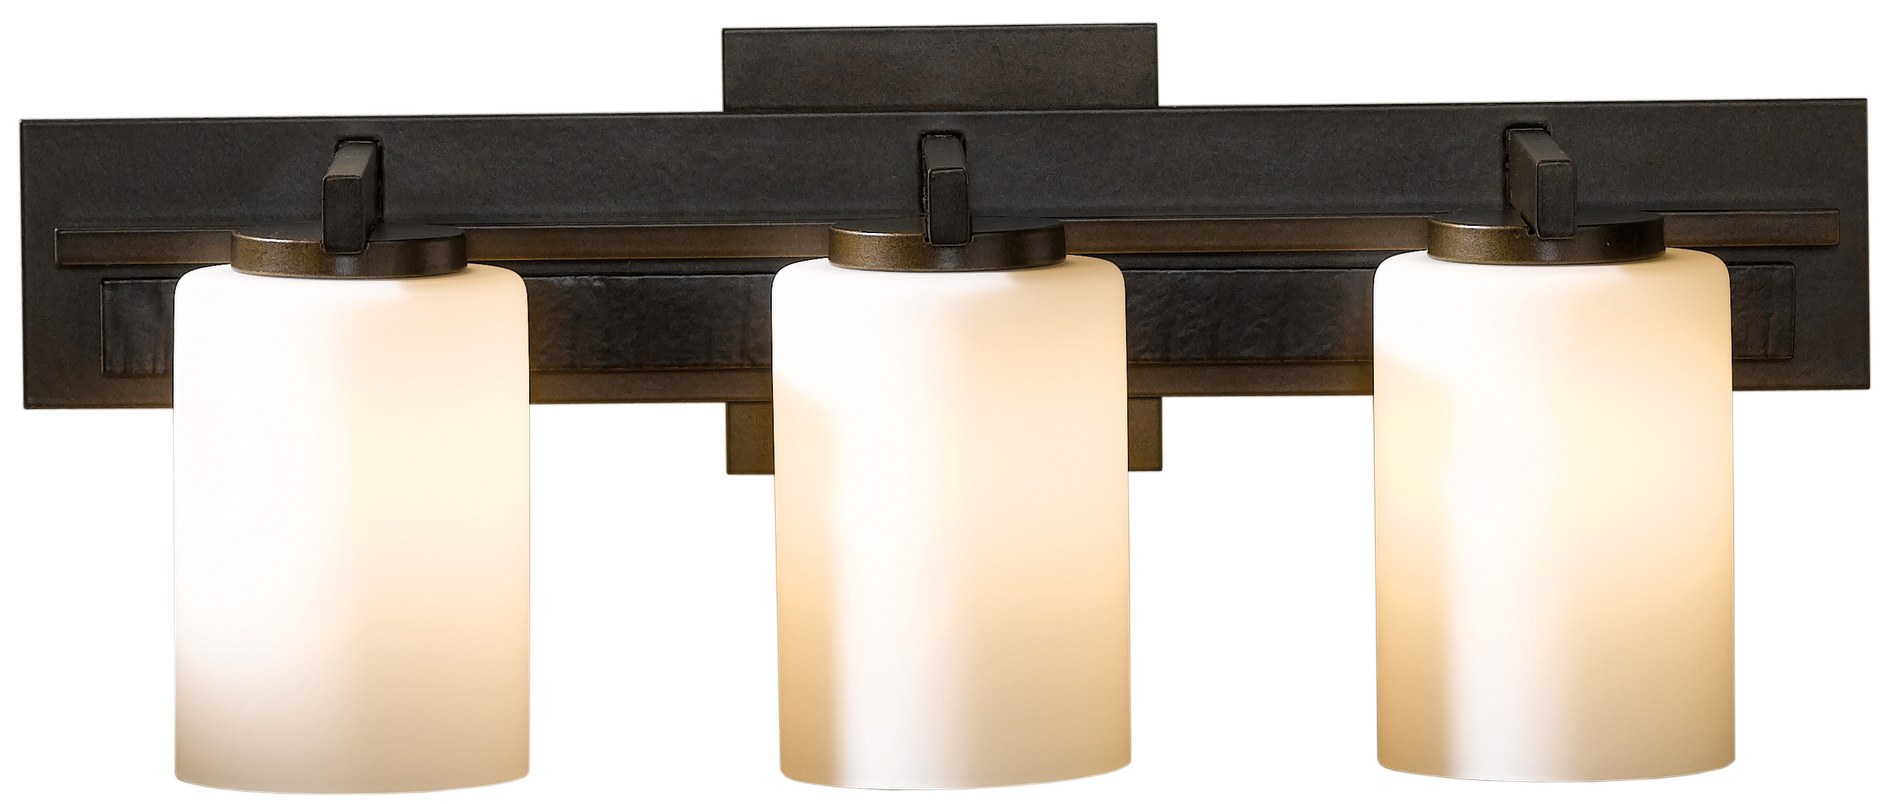 Ondrian Horizontal Bathroom Vanity Light By Hubbardton Forge